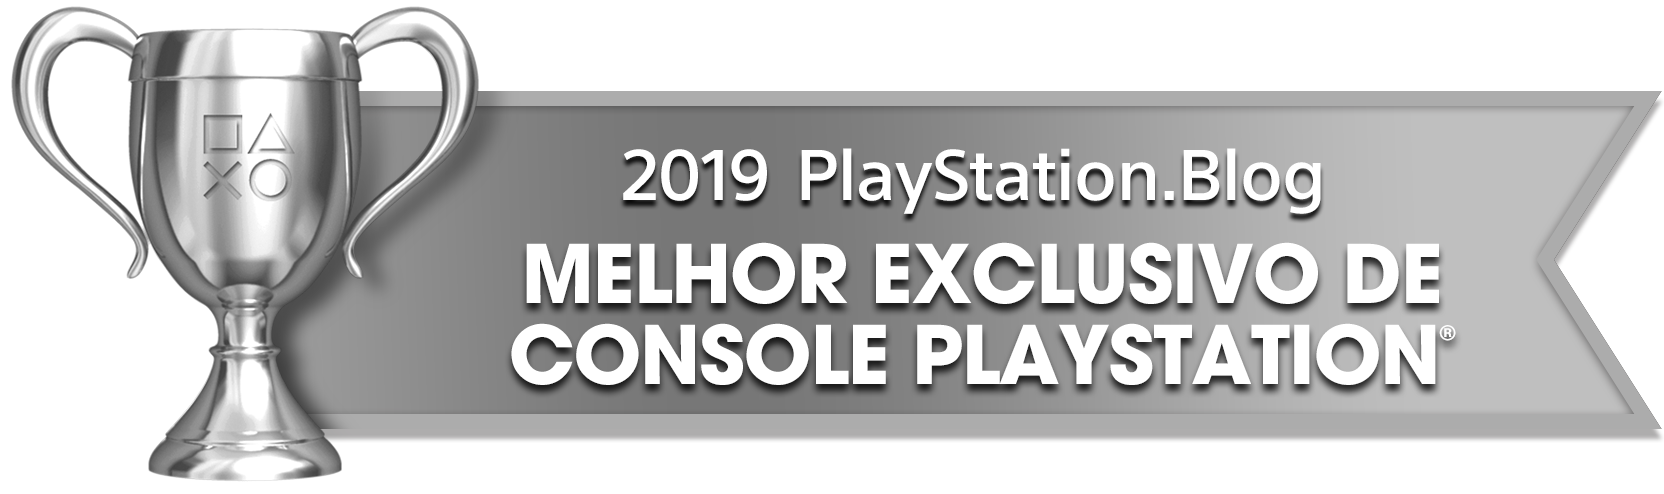 PS Blog Game of the Year 2019 - Best Console Exclusive - 3 - Silver